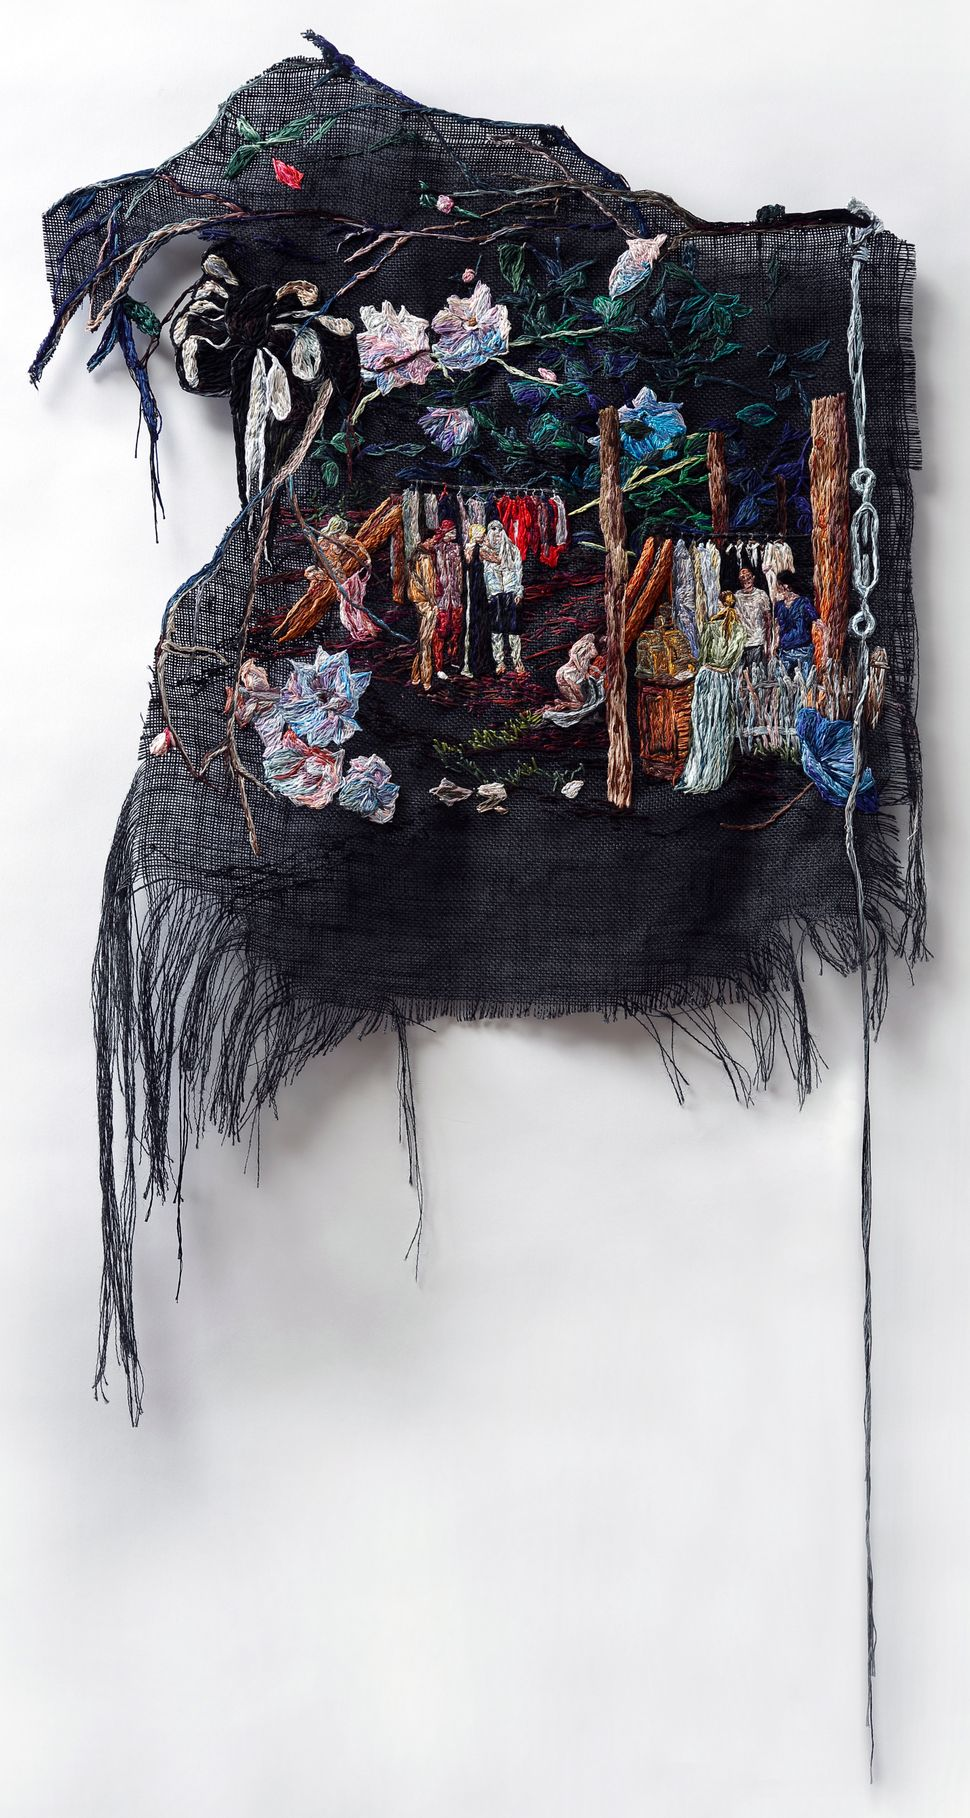 She Whispered and They Tried Things On, 2014, Embroidery Thread and Fabric, 28 x 45 in